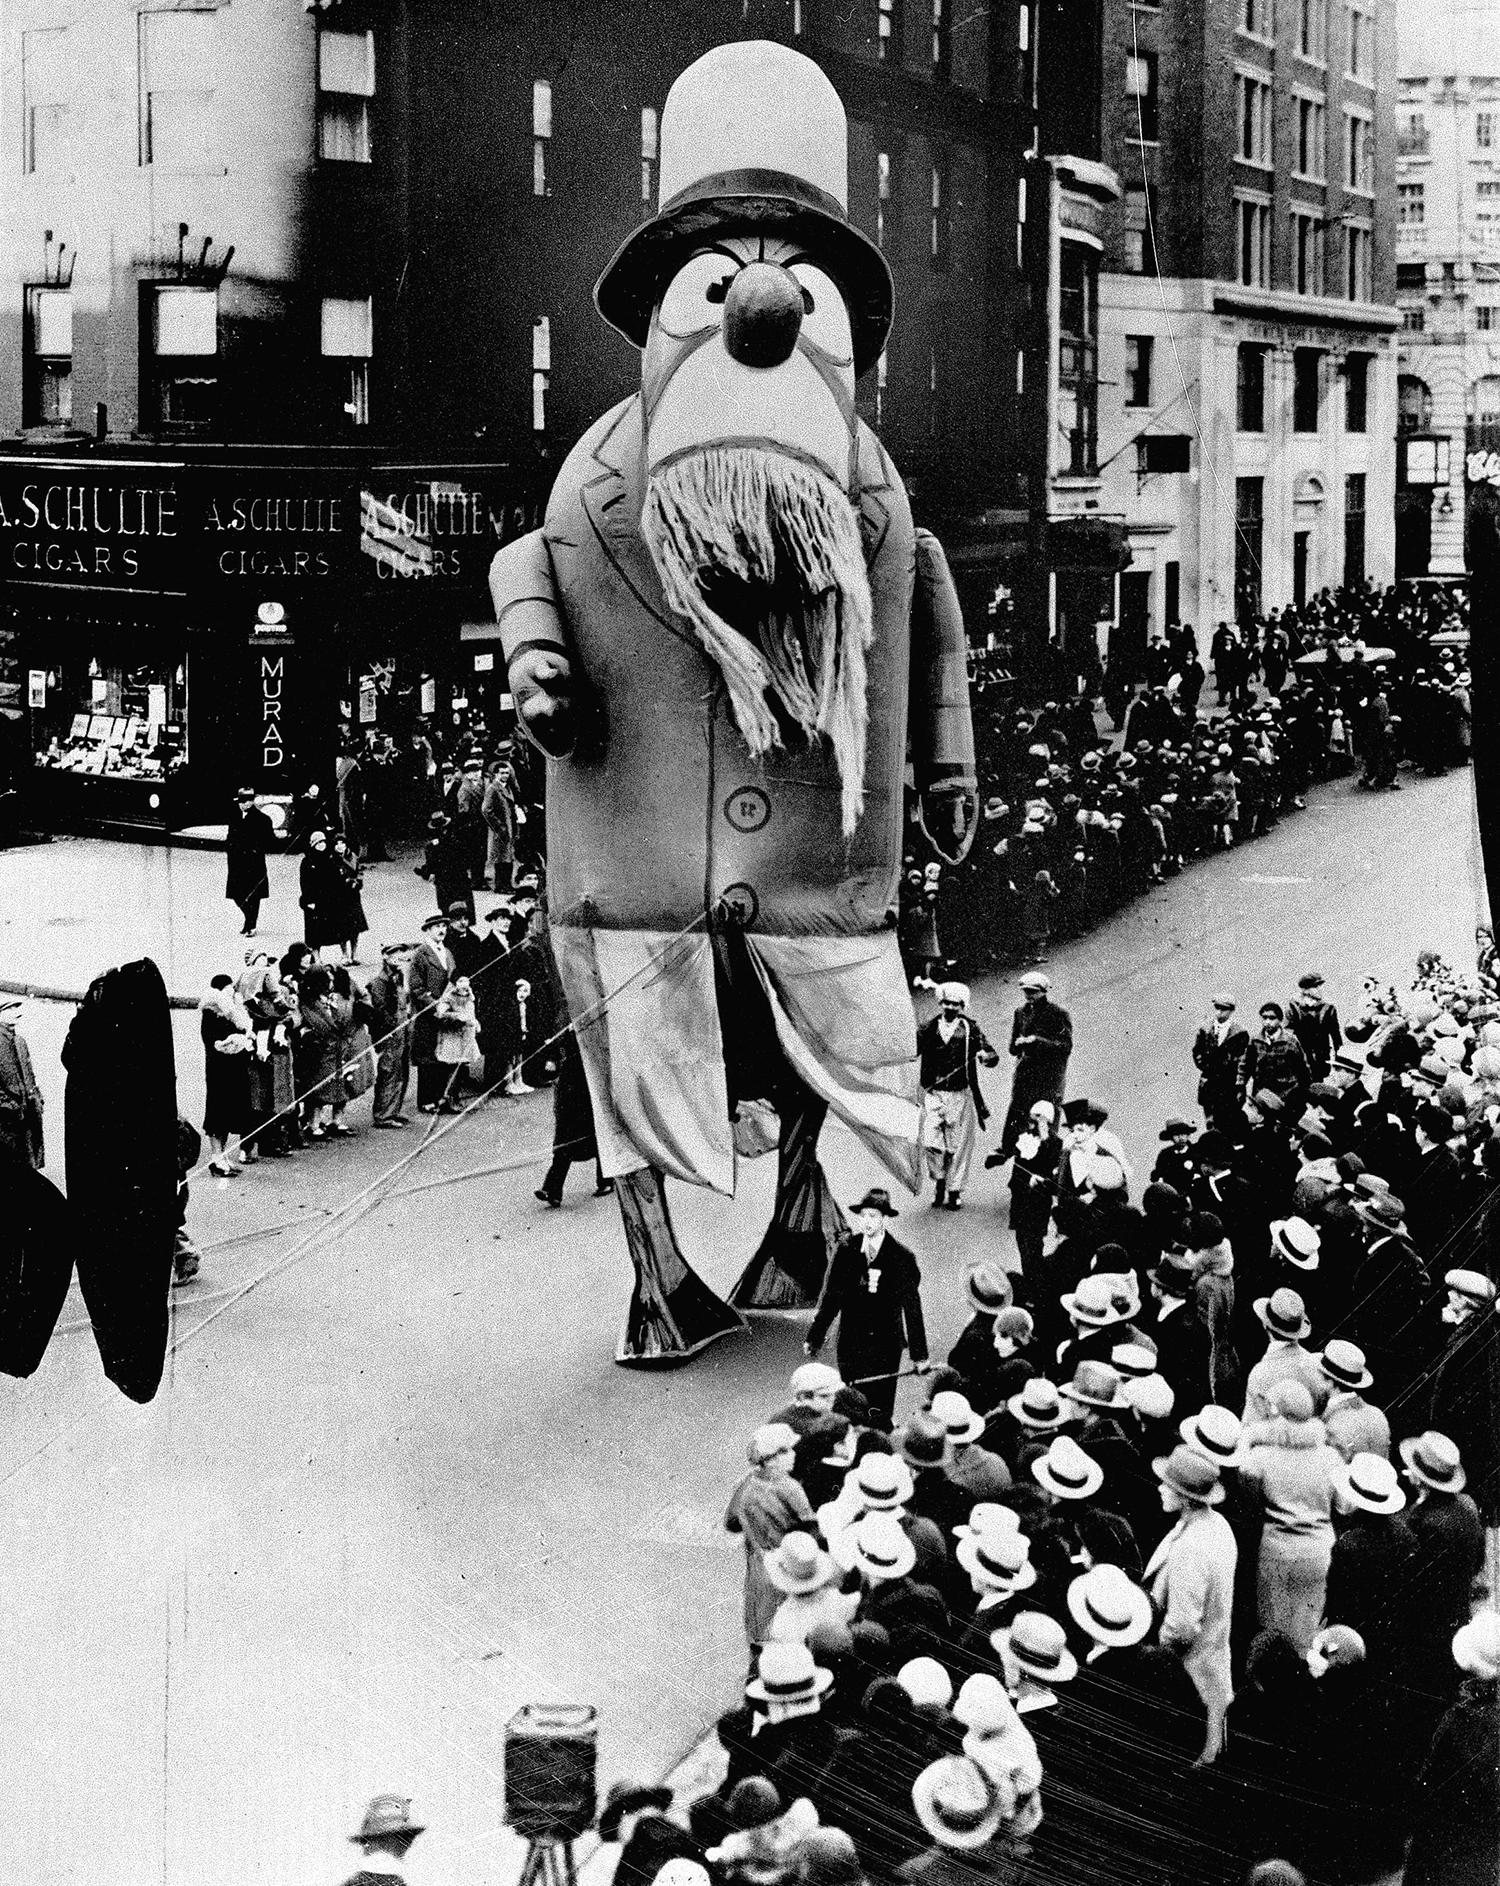 <p>A large outdoor float of Captain Nemo makes its way down the street during the Macy's Thanksgiving Day Parade in New York City, on Nov. 28, 1929. (Photo: AP) </p>